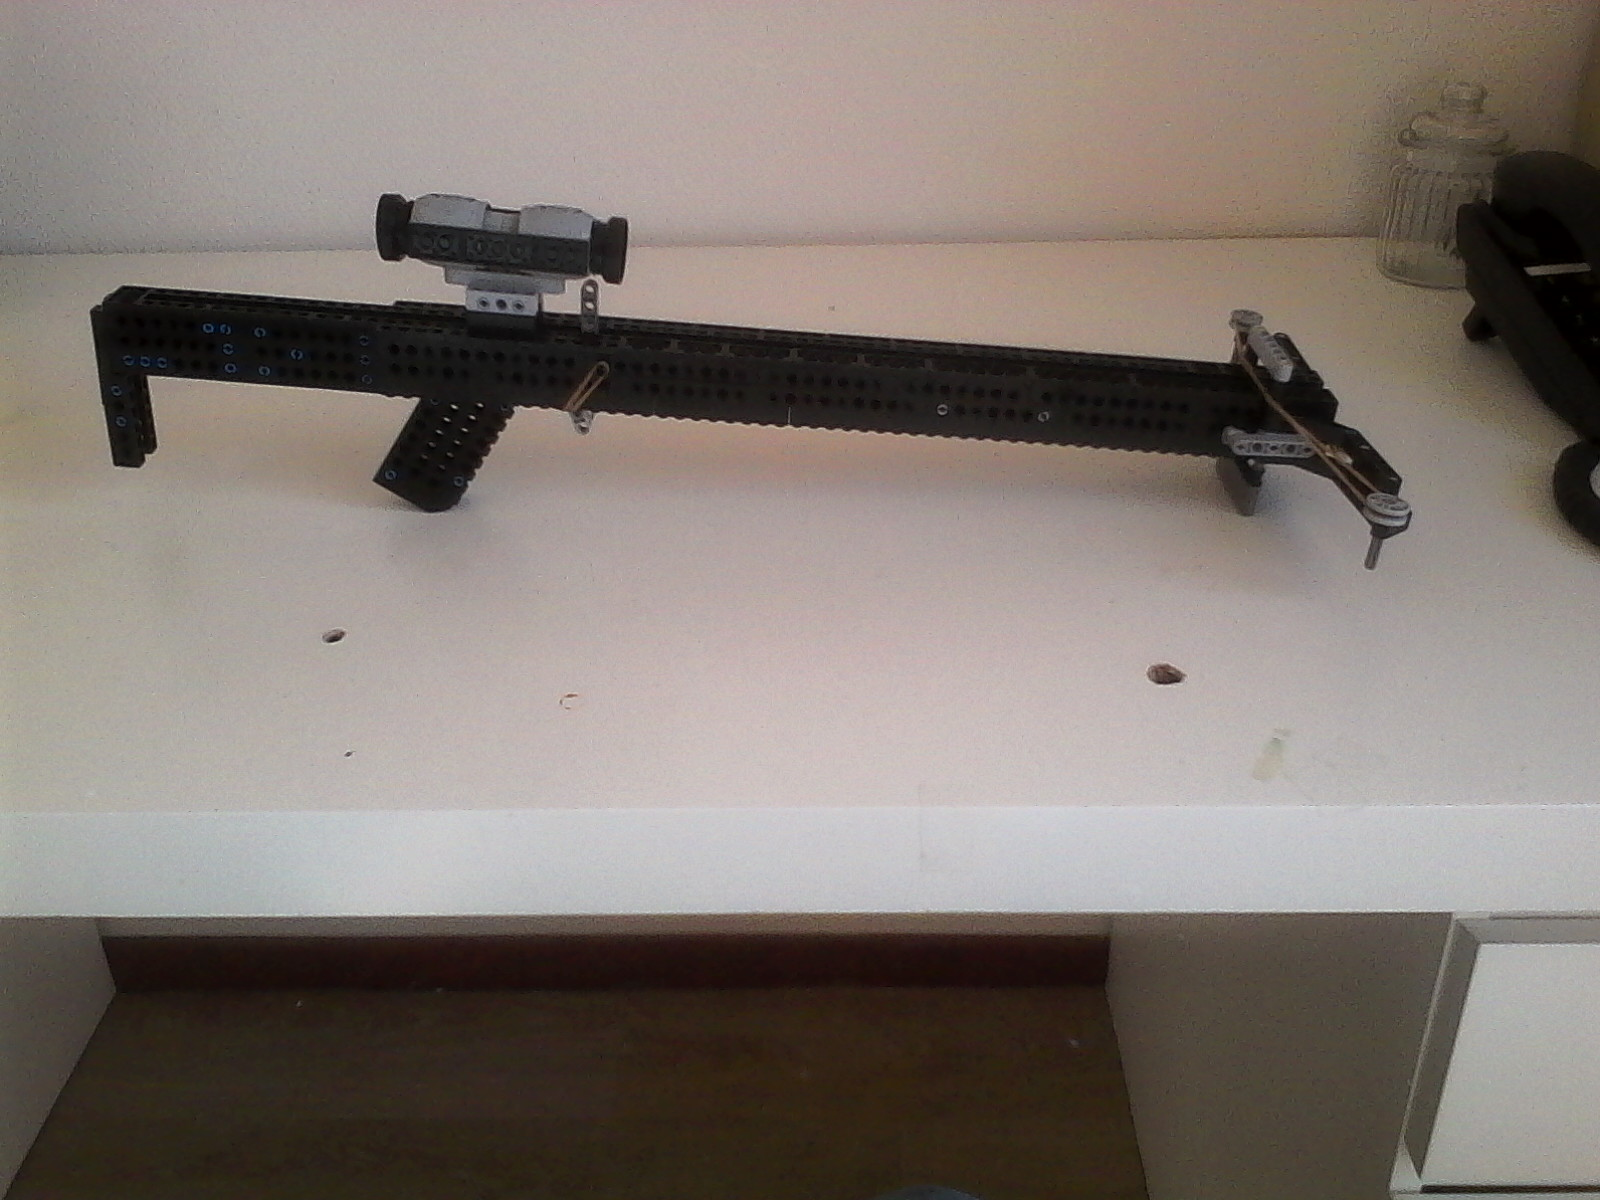 how to make a very powerful Lego crossbow